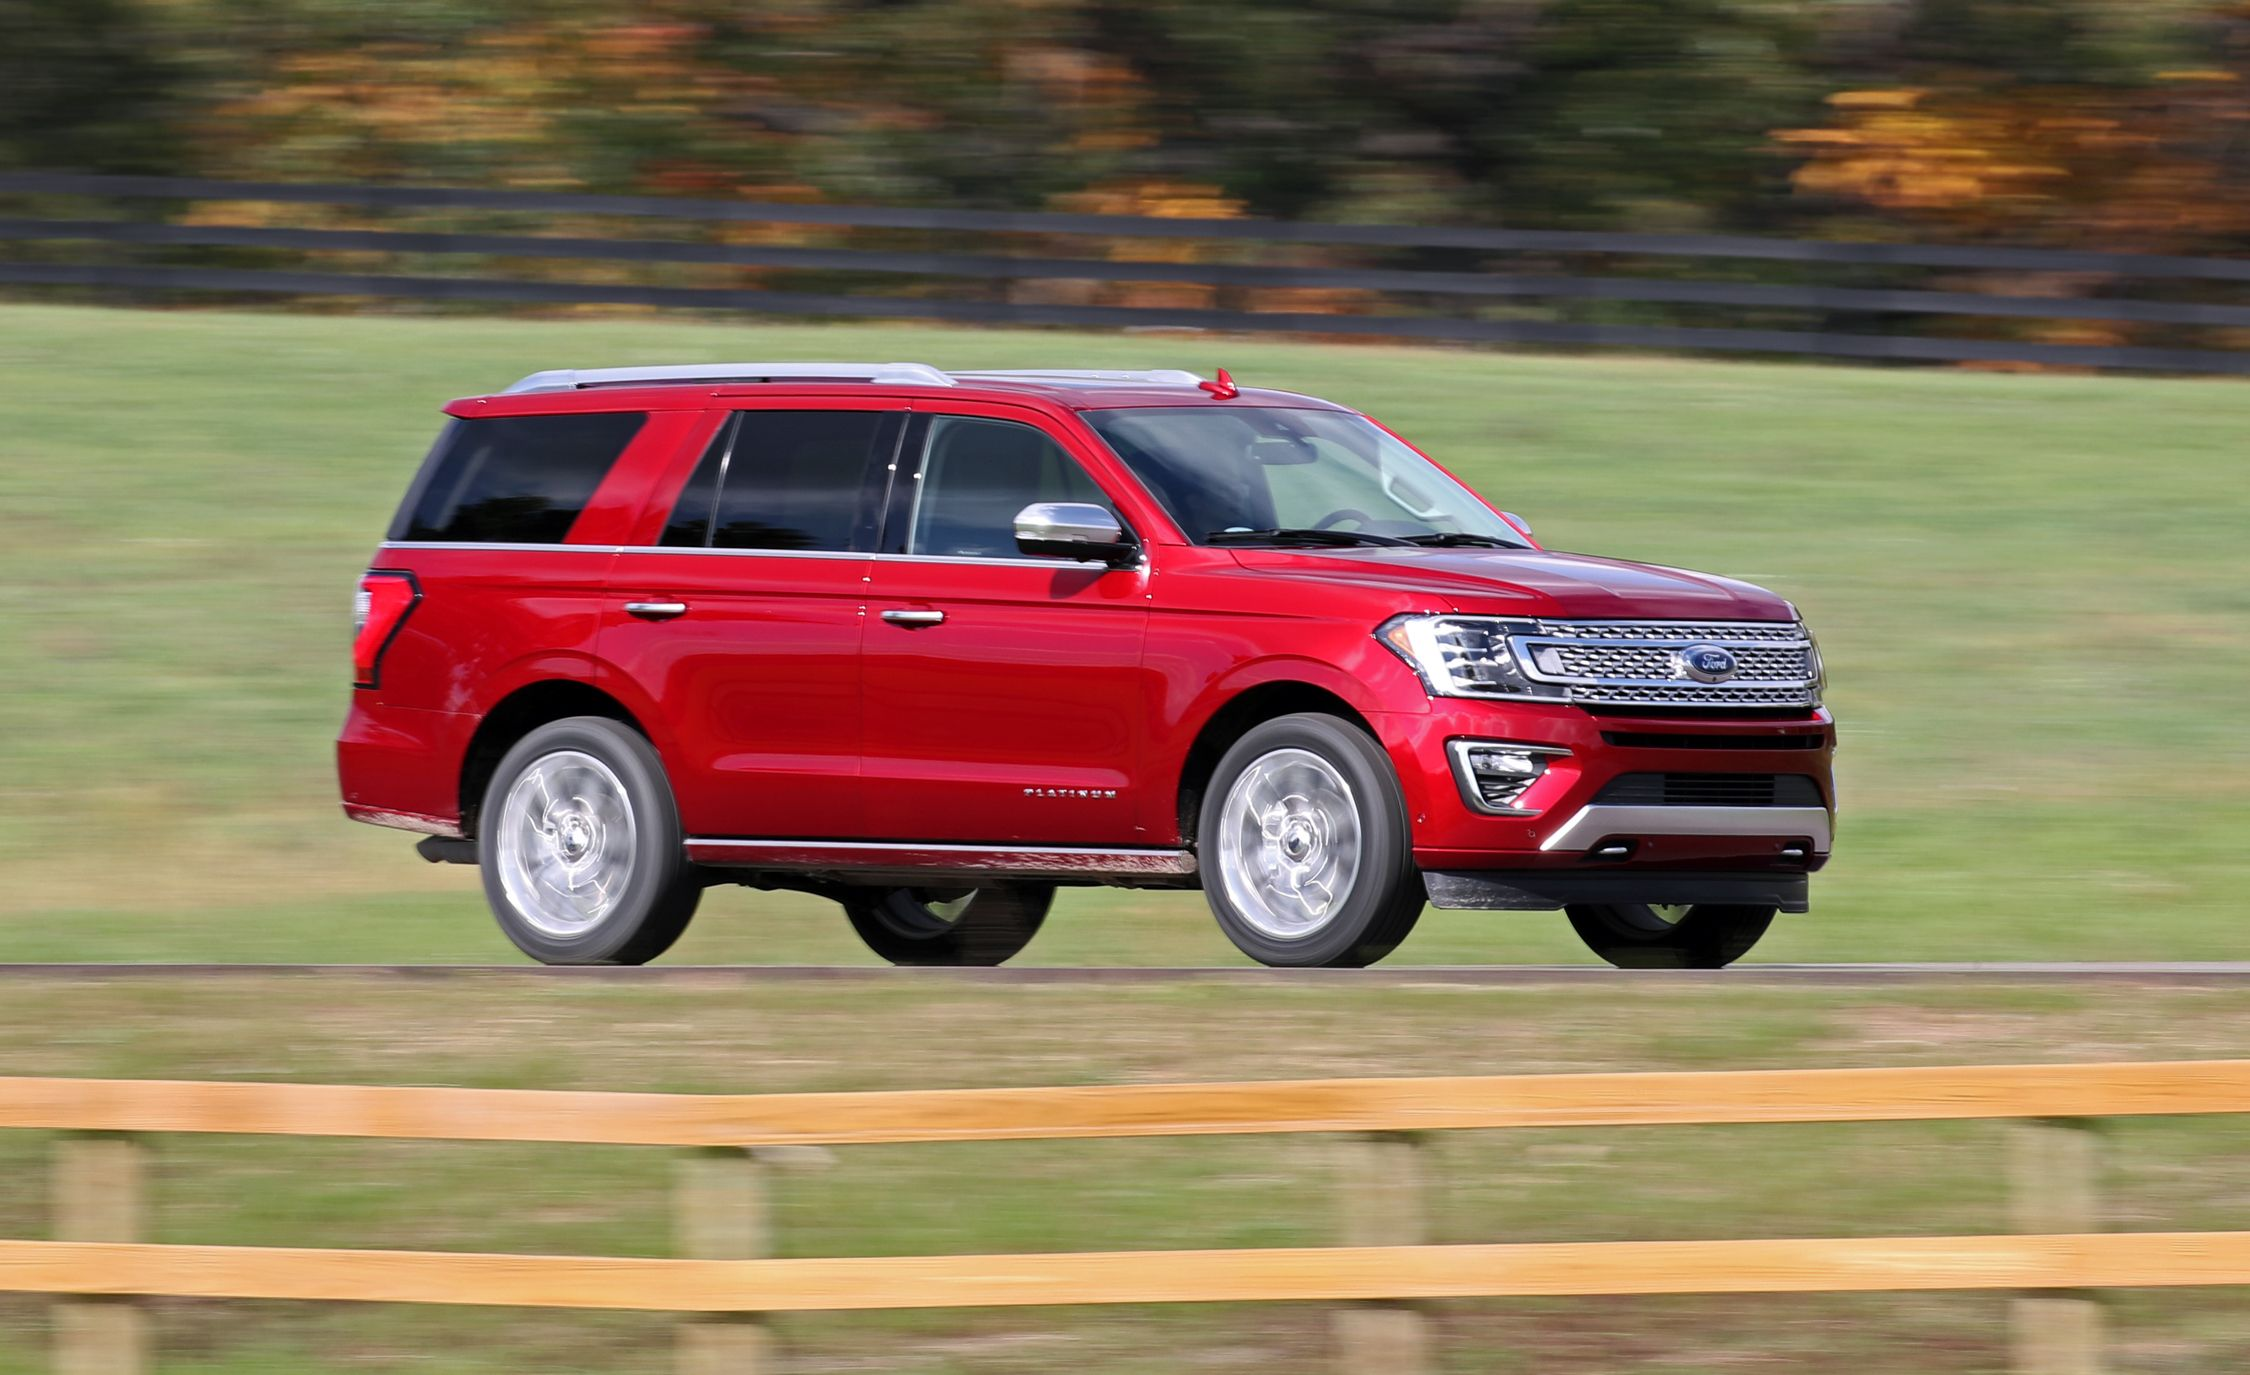 Ford Expedition Expedition Max Reviews Ford Expedition Expedition Max Price Photos And Specs Car And Driver